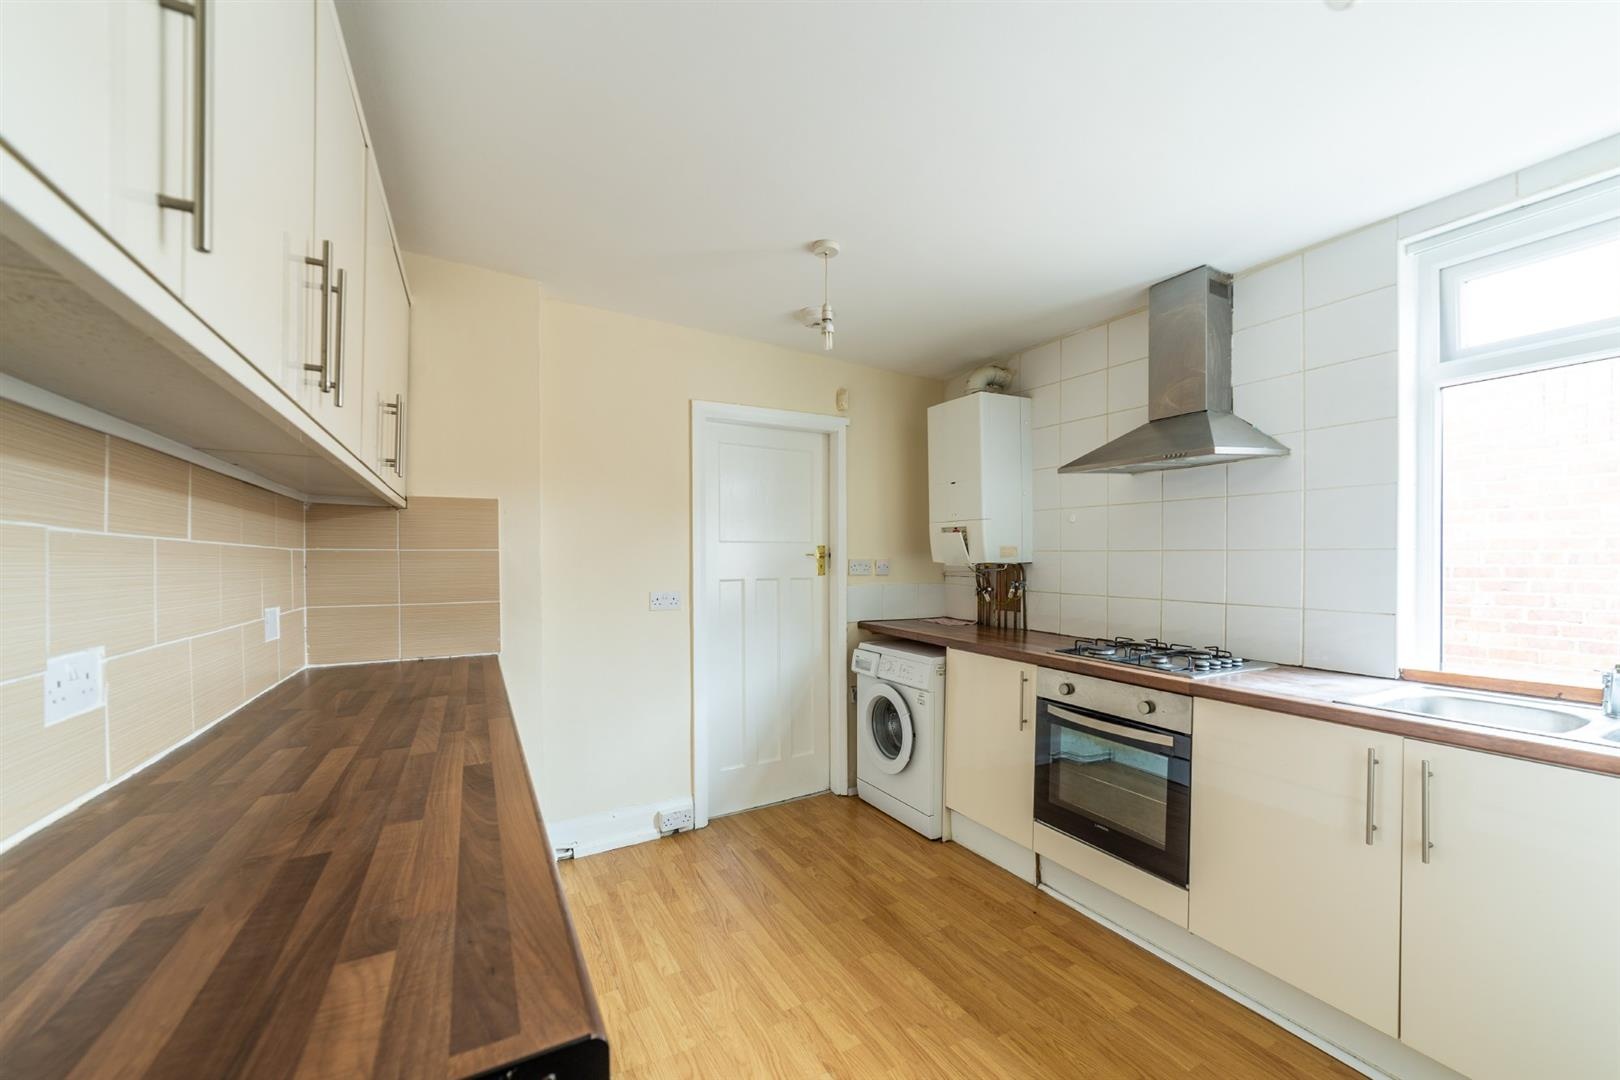 3 bed flat to rent in Newcastle Upon Tyne, NE2 2JS  - Property Image 3